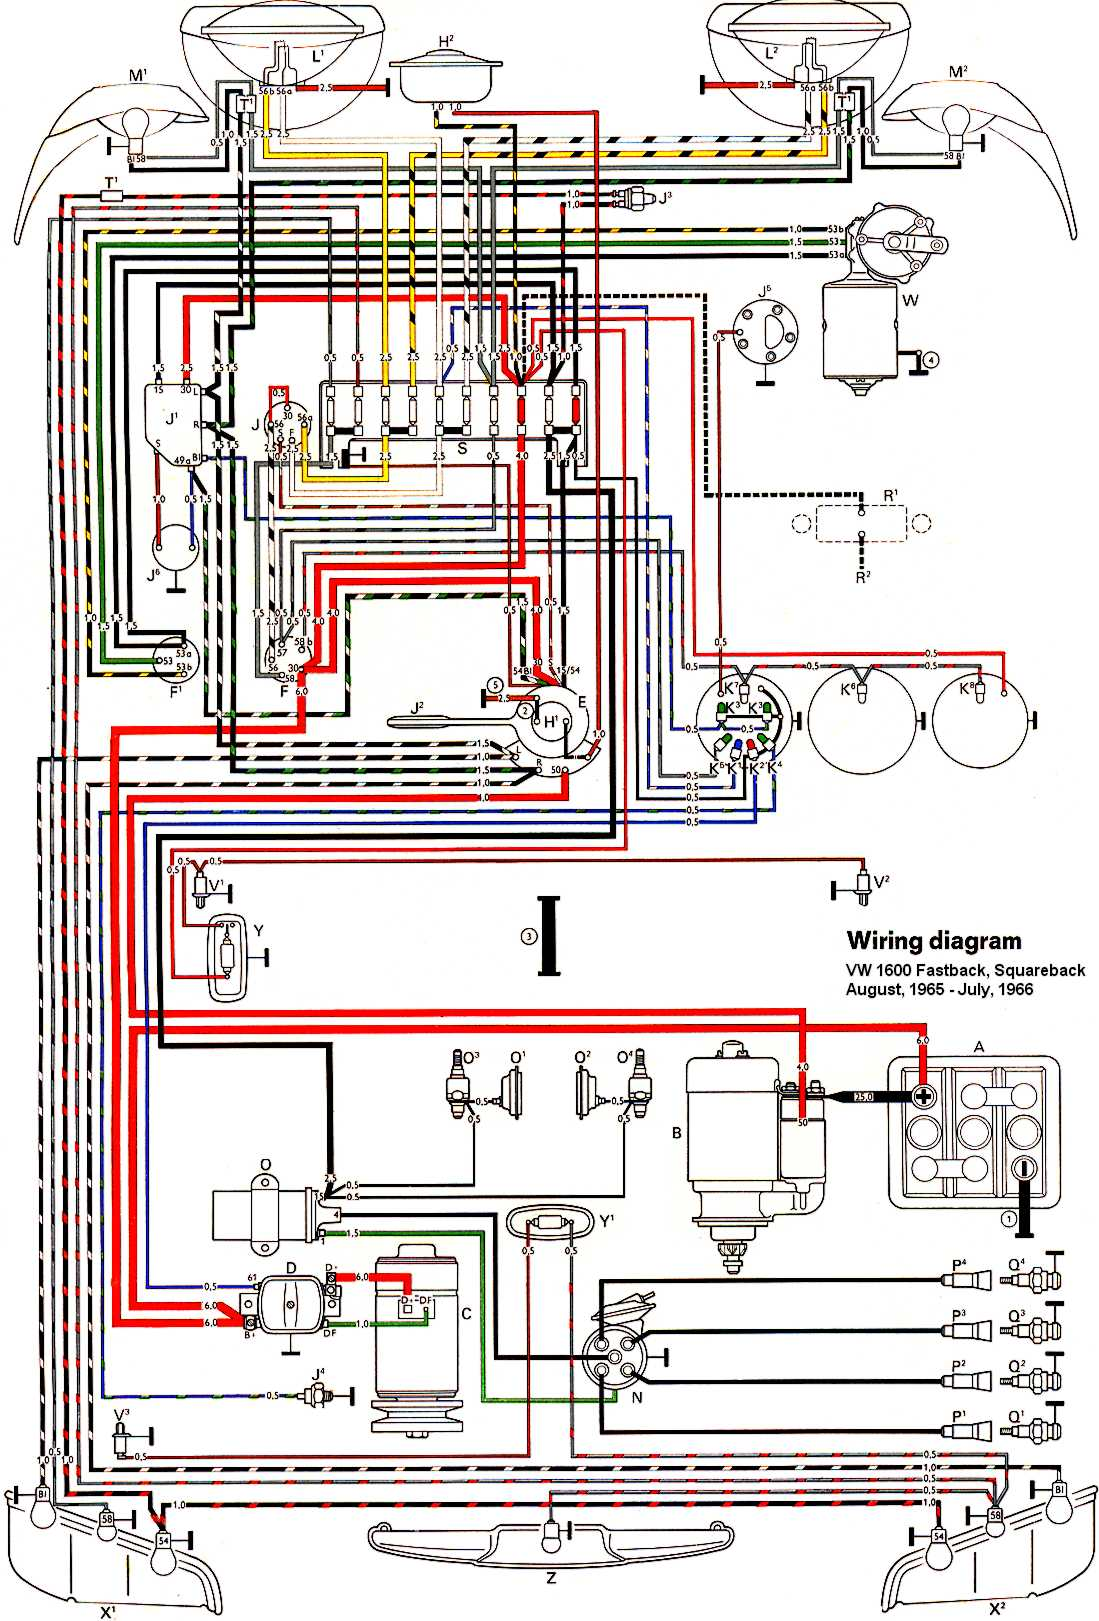 thesamba.com :: type 3 wiring diagrams 4 wire schematic wiring #13